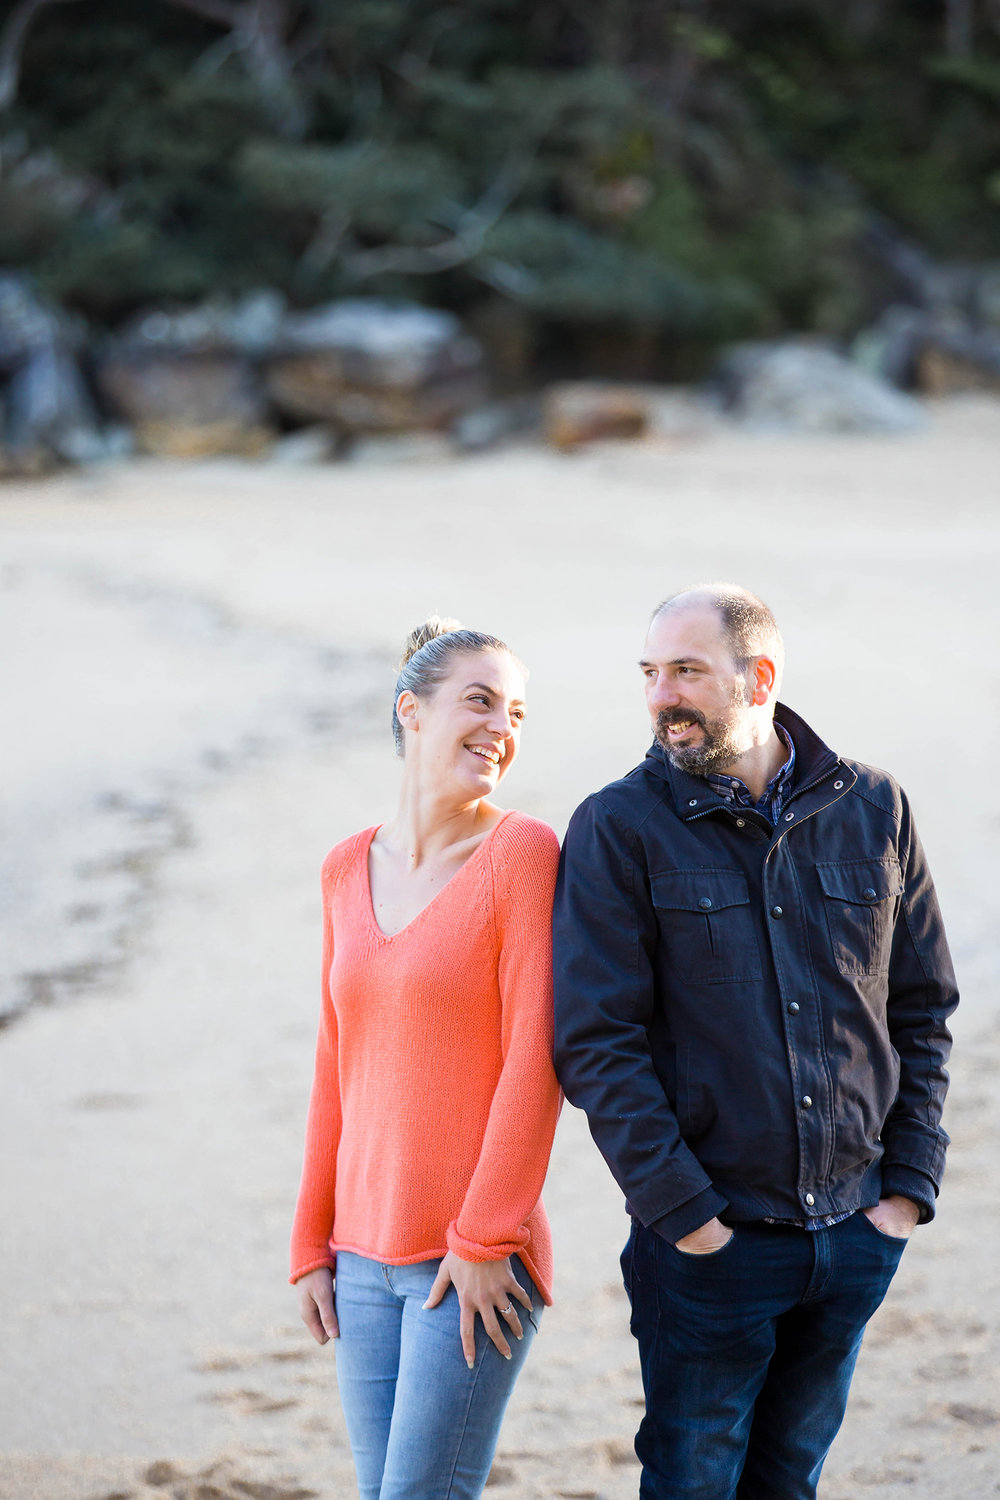 Sydney Pre-Wedding Photo Session - Shelly Beach Manly - Jennifer Lam Photography (9).jpg